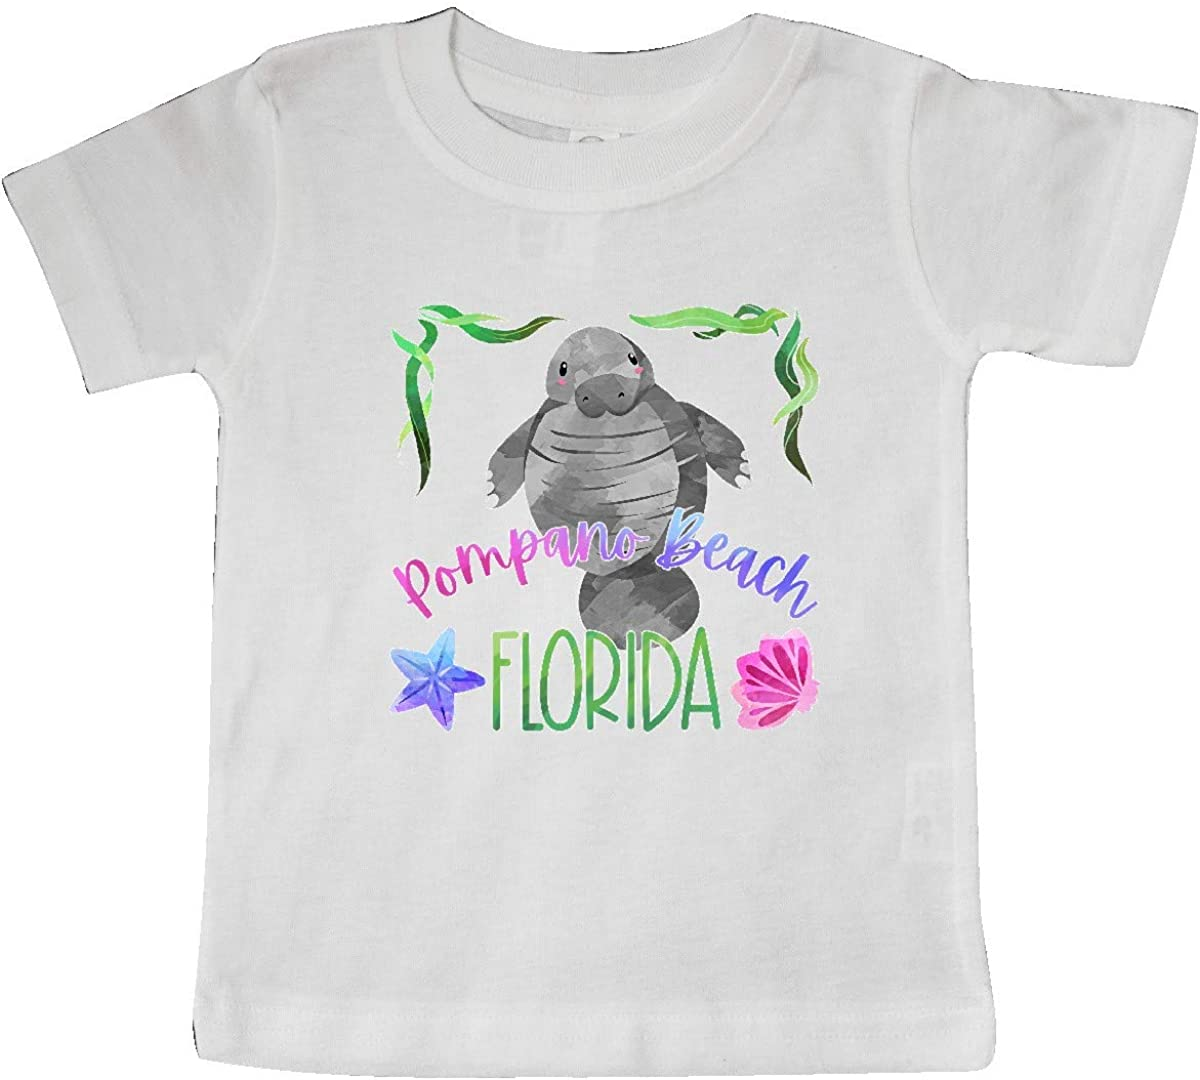 inktastic Pompano Beach Florida Cute Swimming Manatee Baby T-Shirt